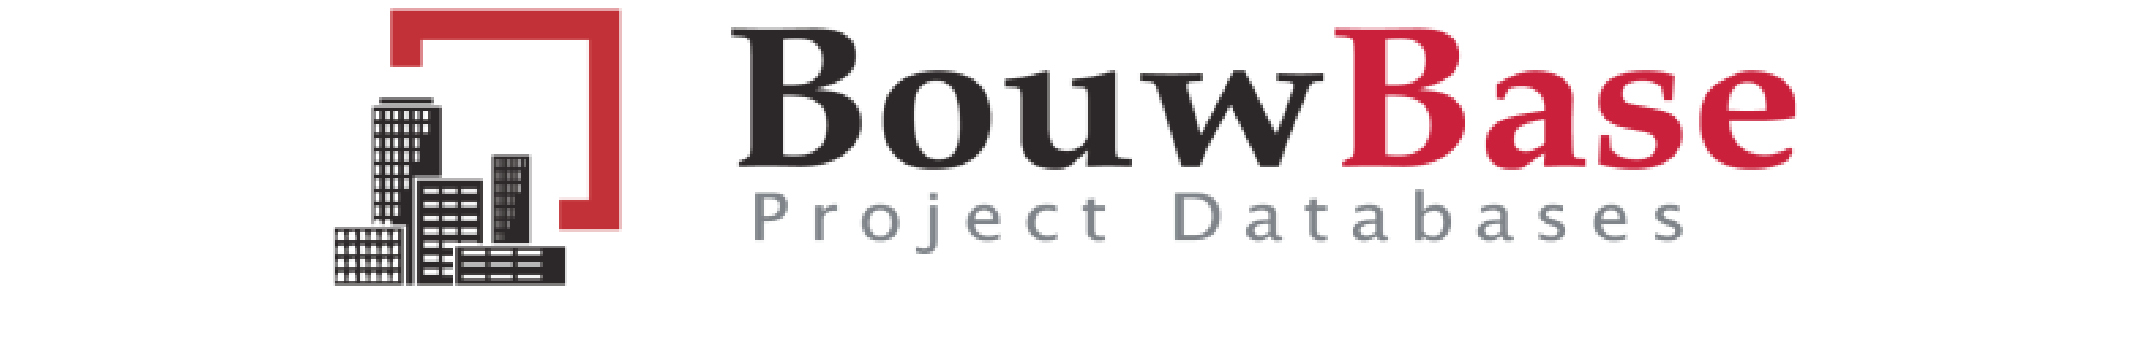 bouwbaseprojects